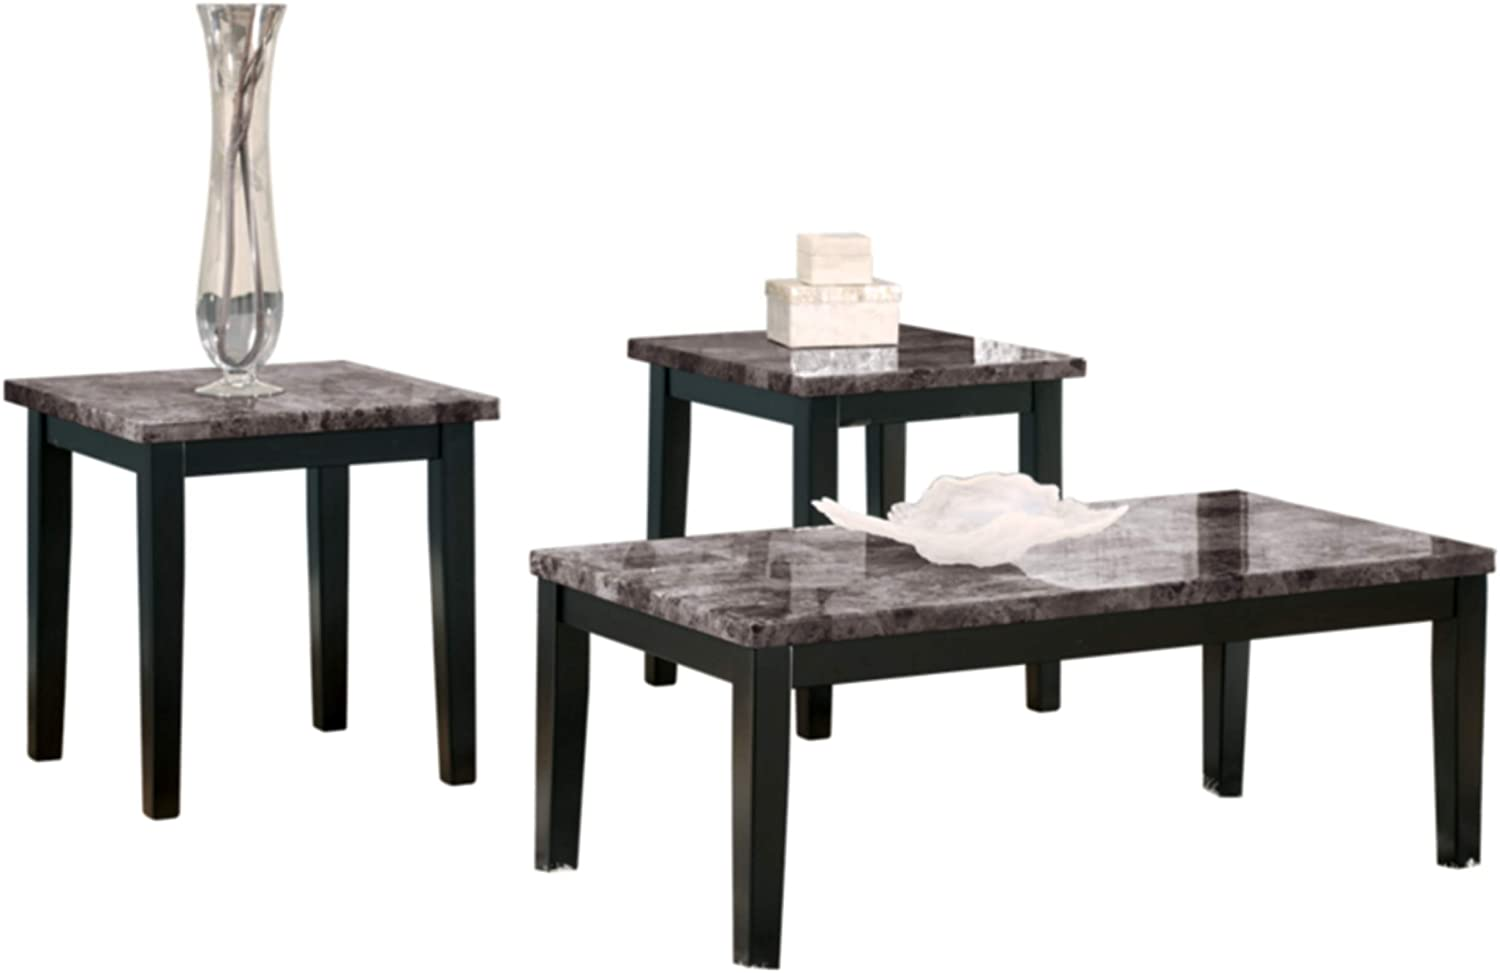 Signature Design By Ashley Maysville Faux Marble Coffee Table Set Includes Table 2 End Tables Black Furniture Decor